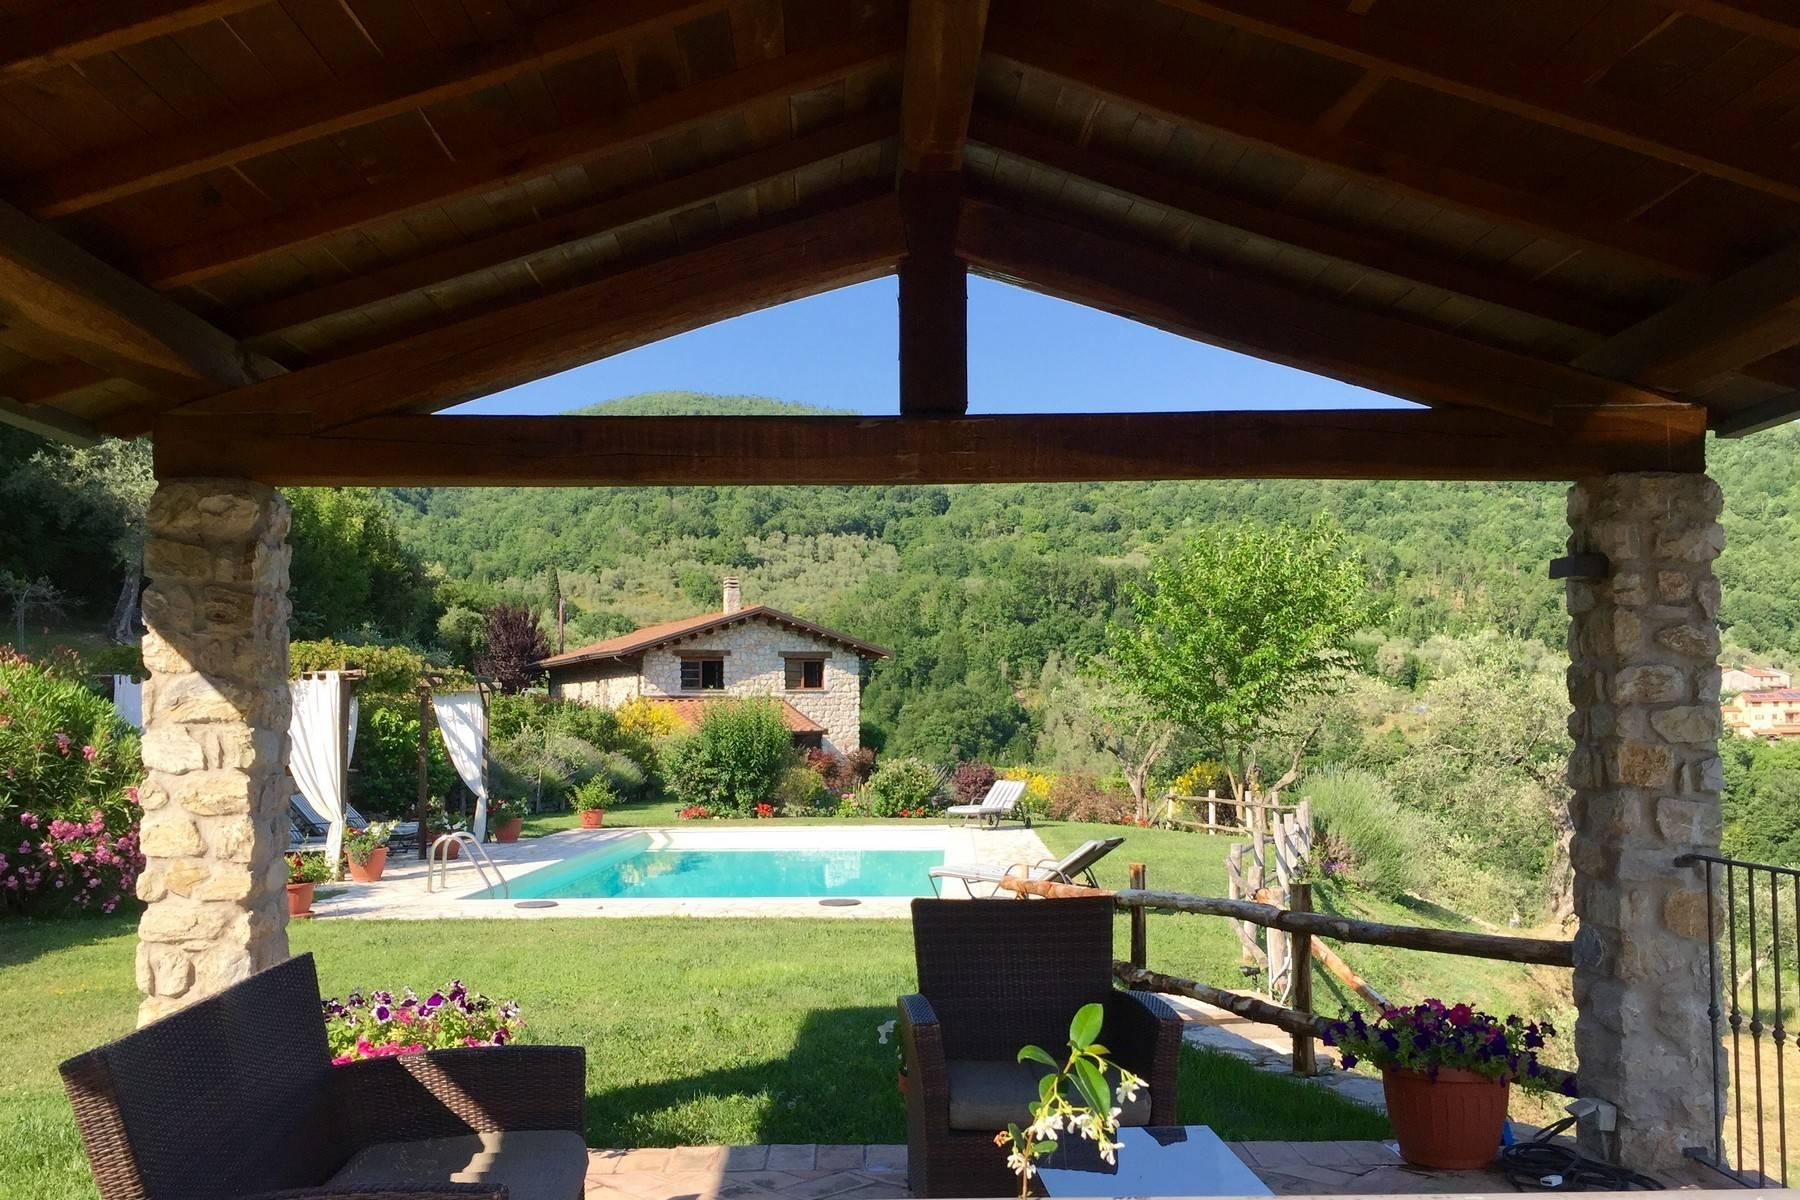 Delightful country house on the Lunigiana's hills - 2